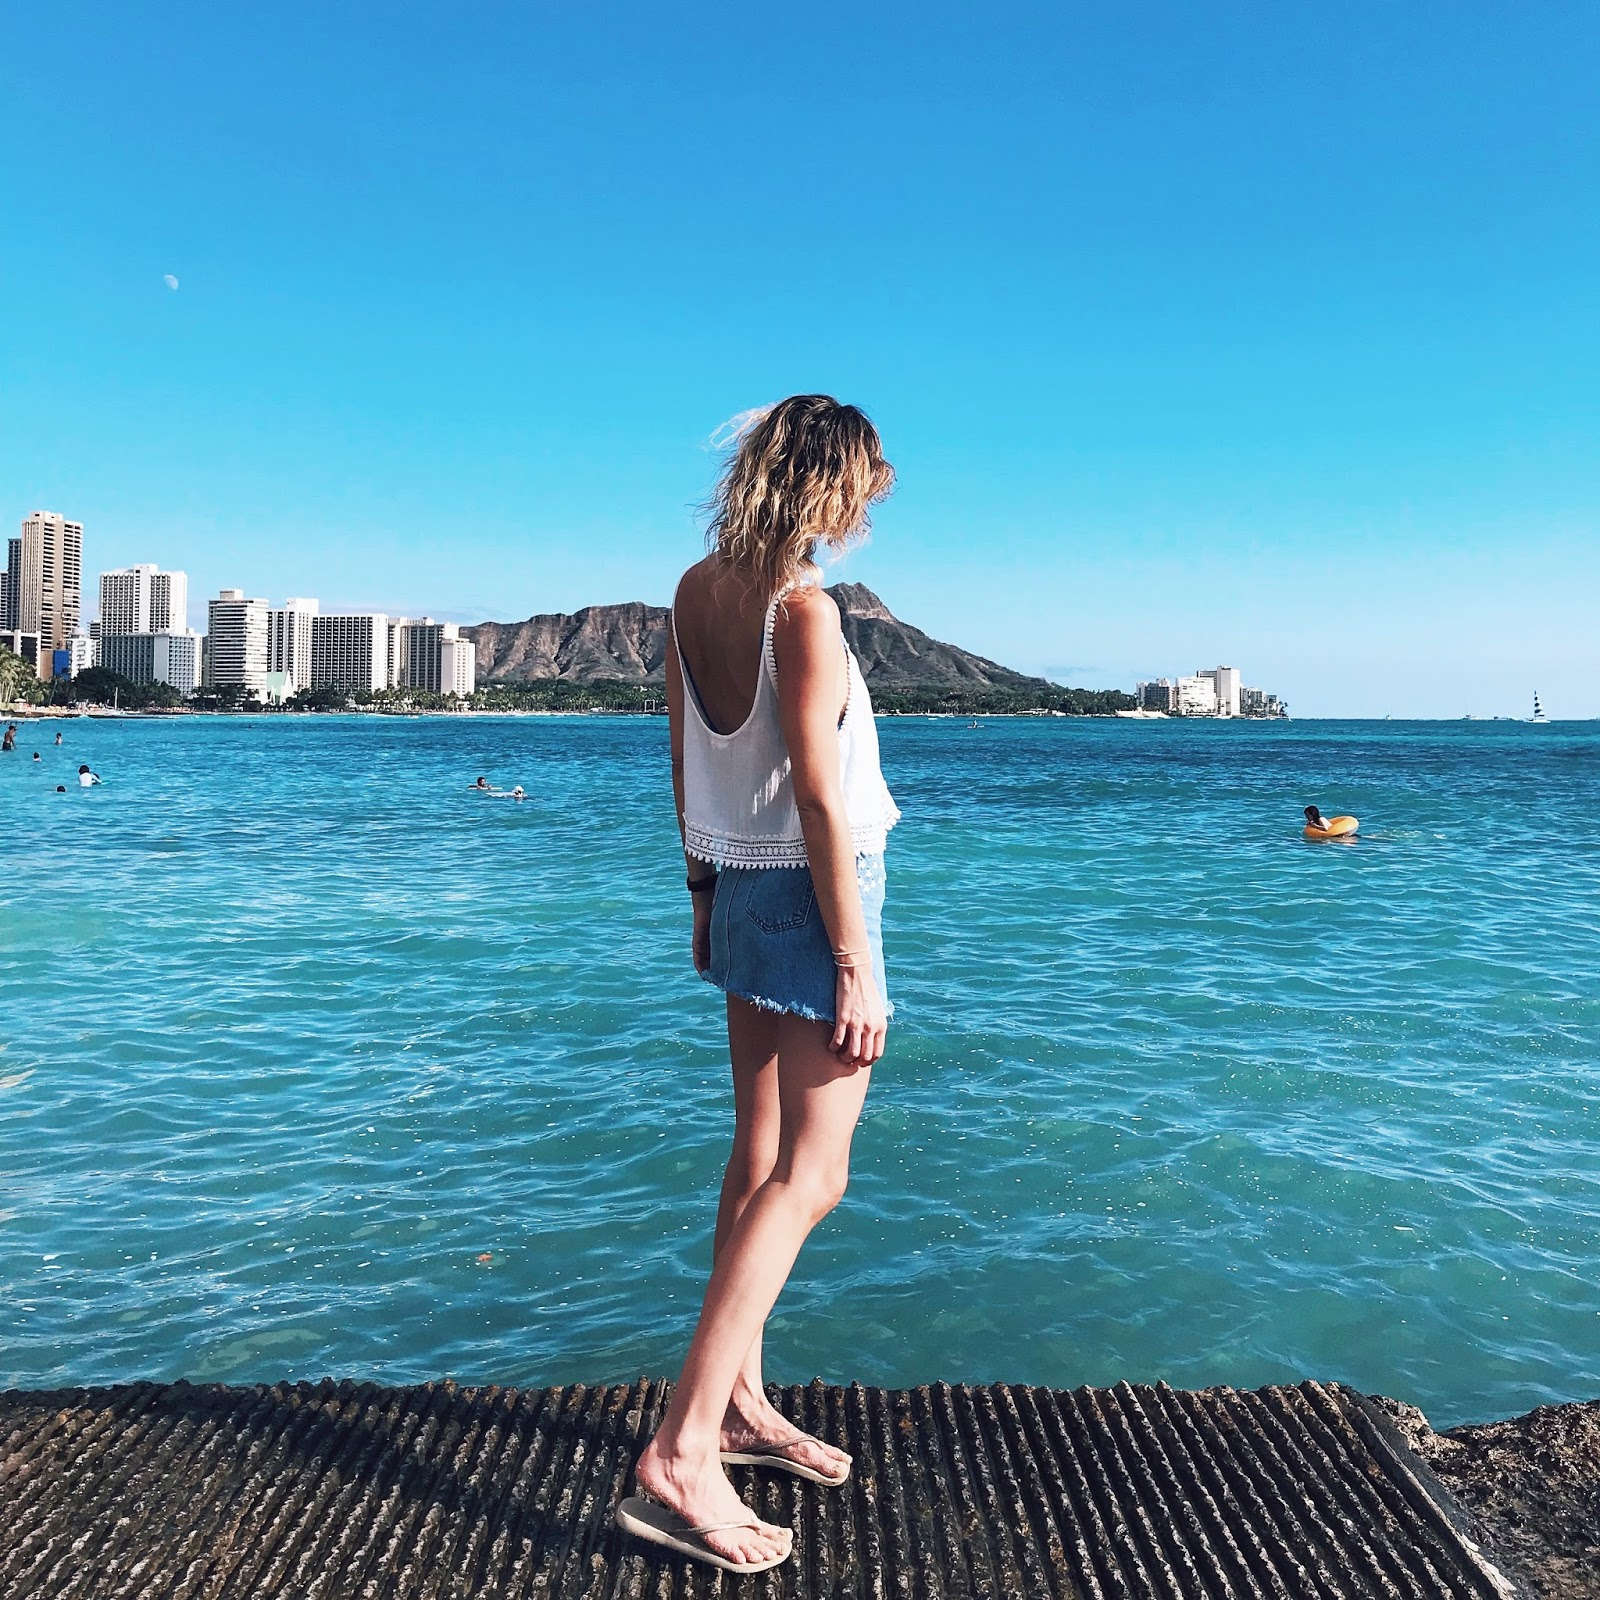 fashion and travel blogger, Alison Hutchinson, at beautiful waikiki beach in Honolulu, Hawaii